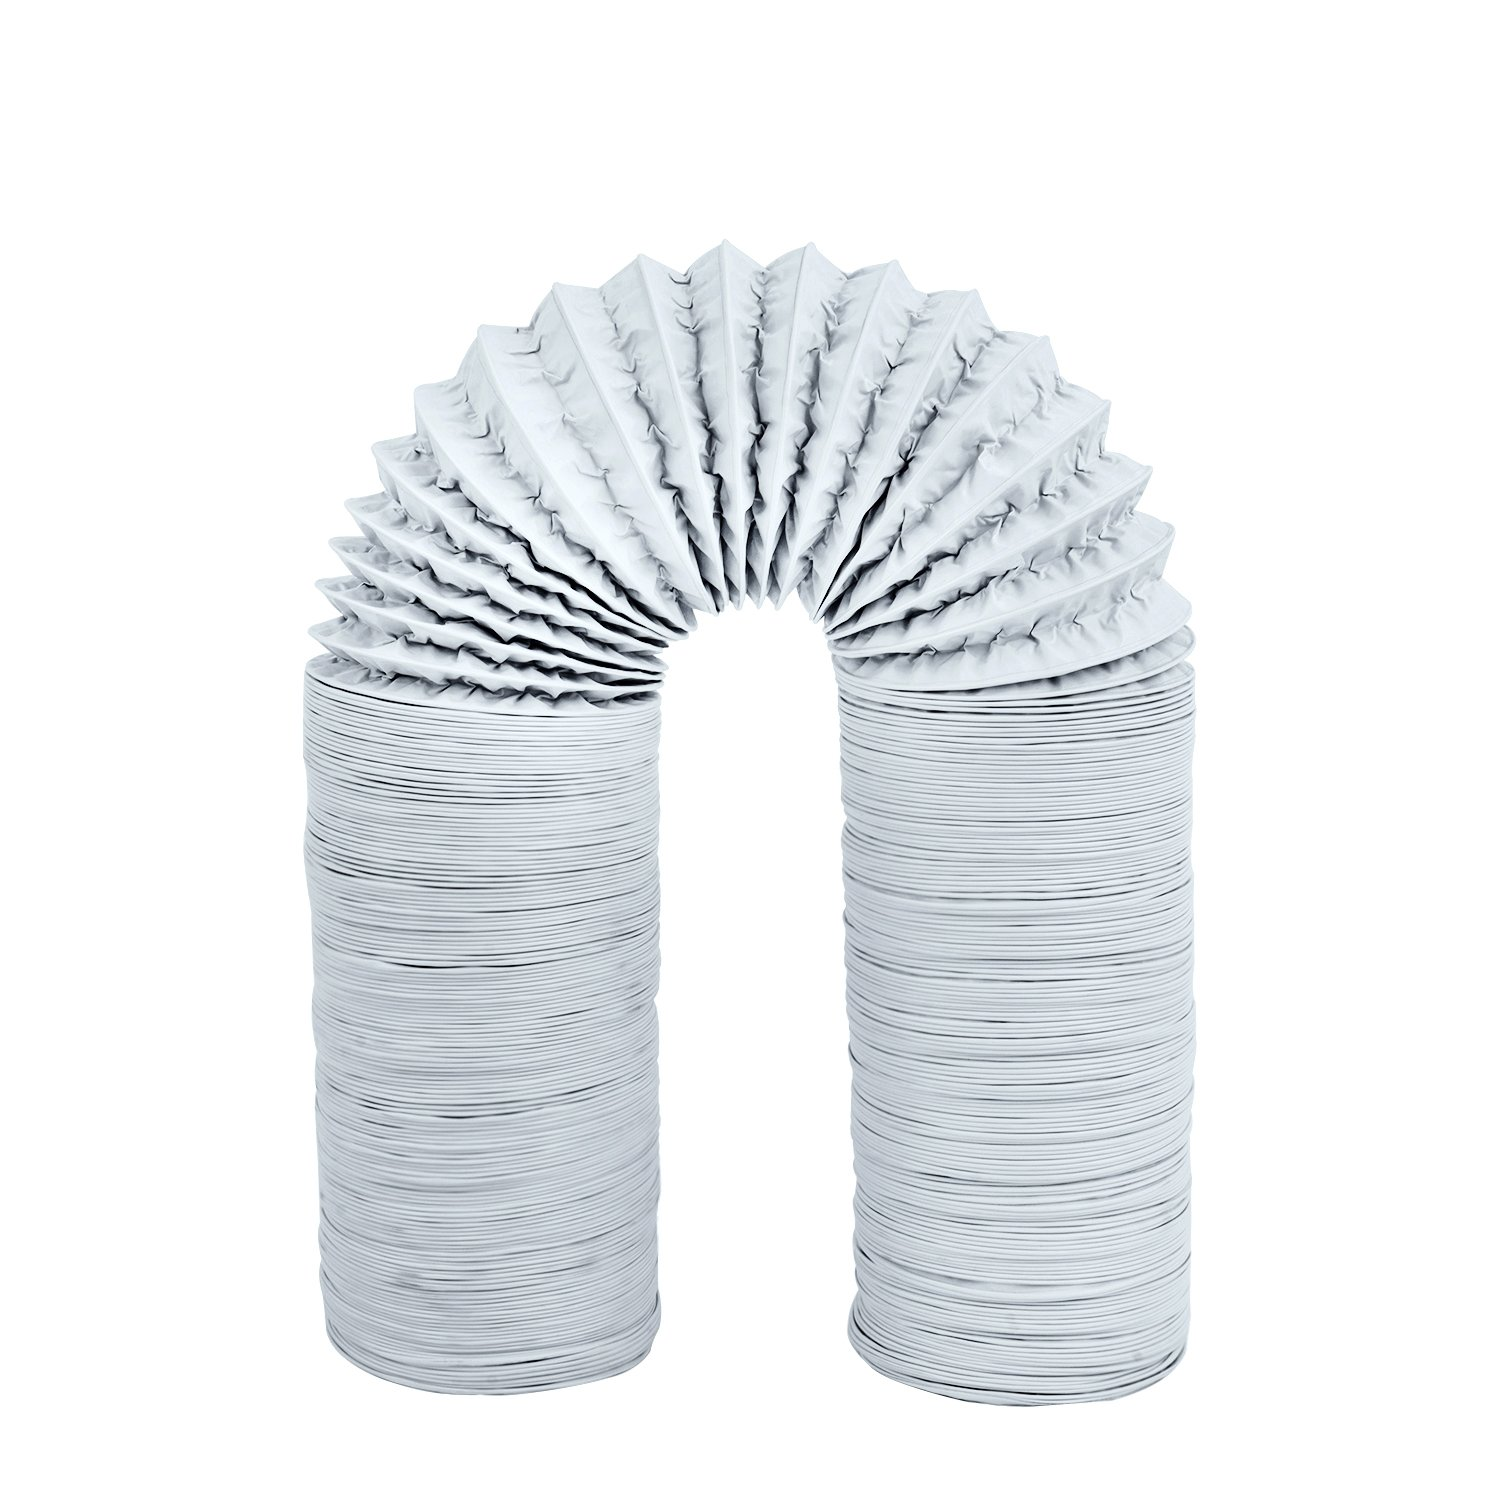 Dryer Rooms,Kitchen Flexible Ducting HVAC Ventilation Air Hose For Grow Tents Hon/&Guan 8 inch Air Duct 16 FT Long